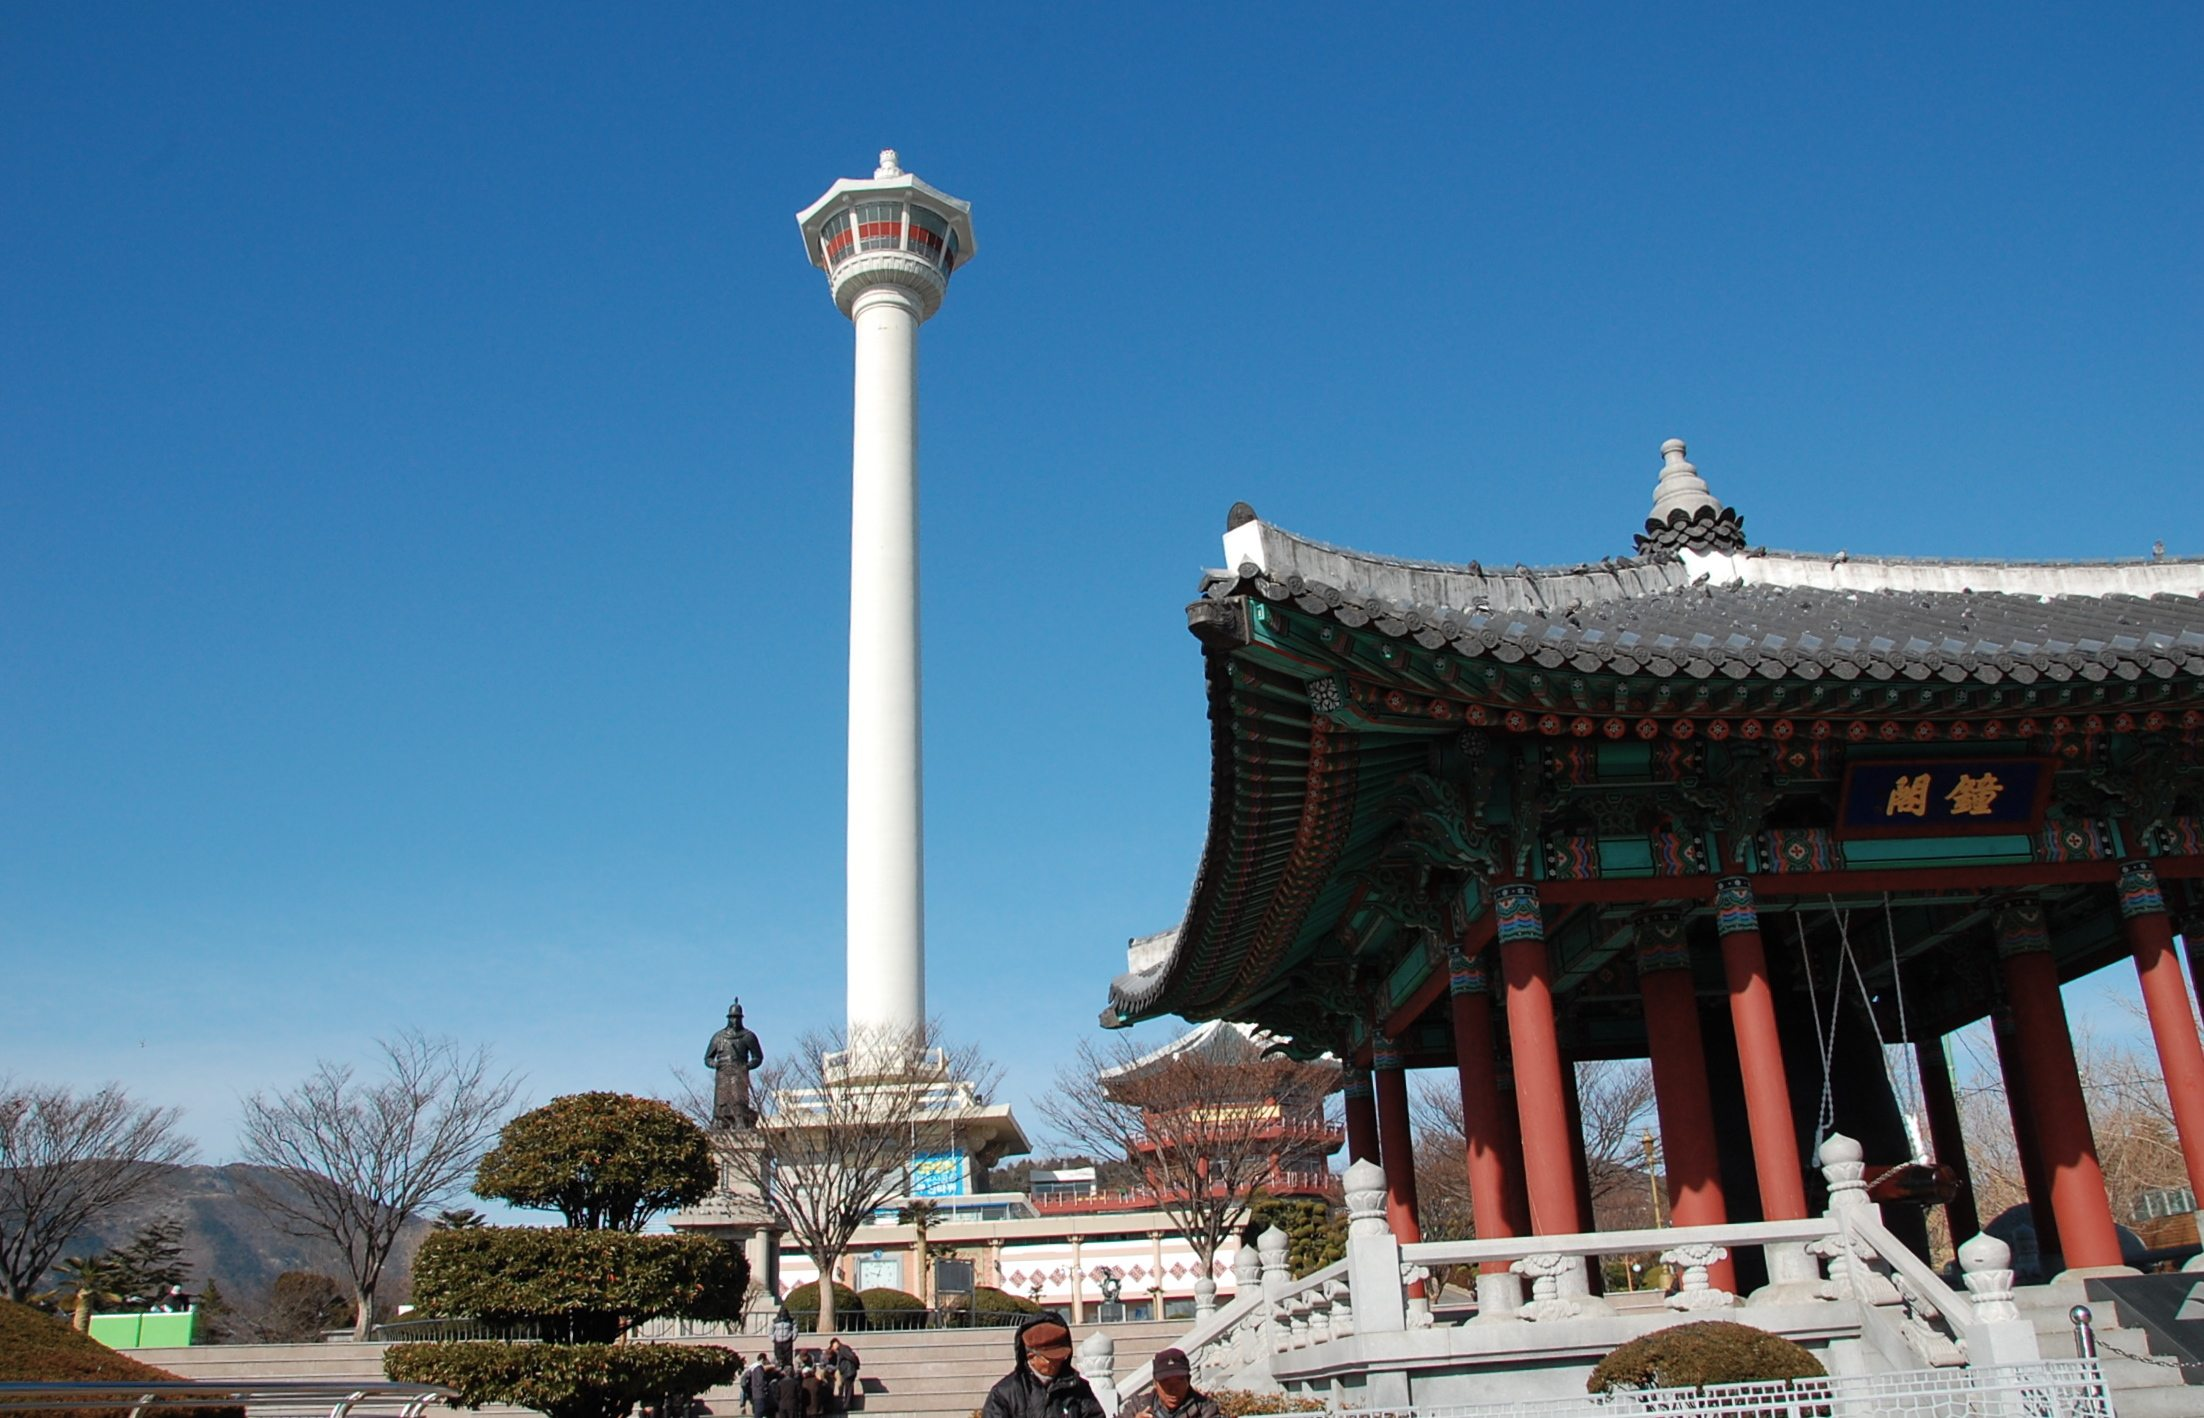 Yongdusan Park and Tower